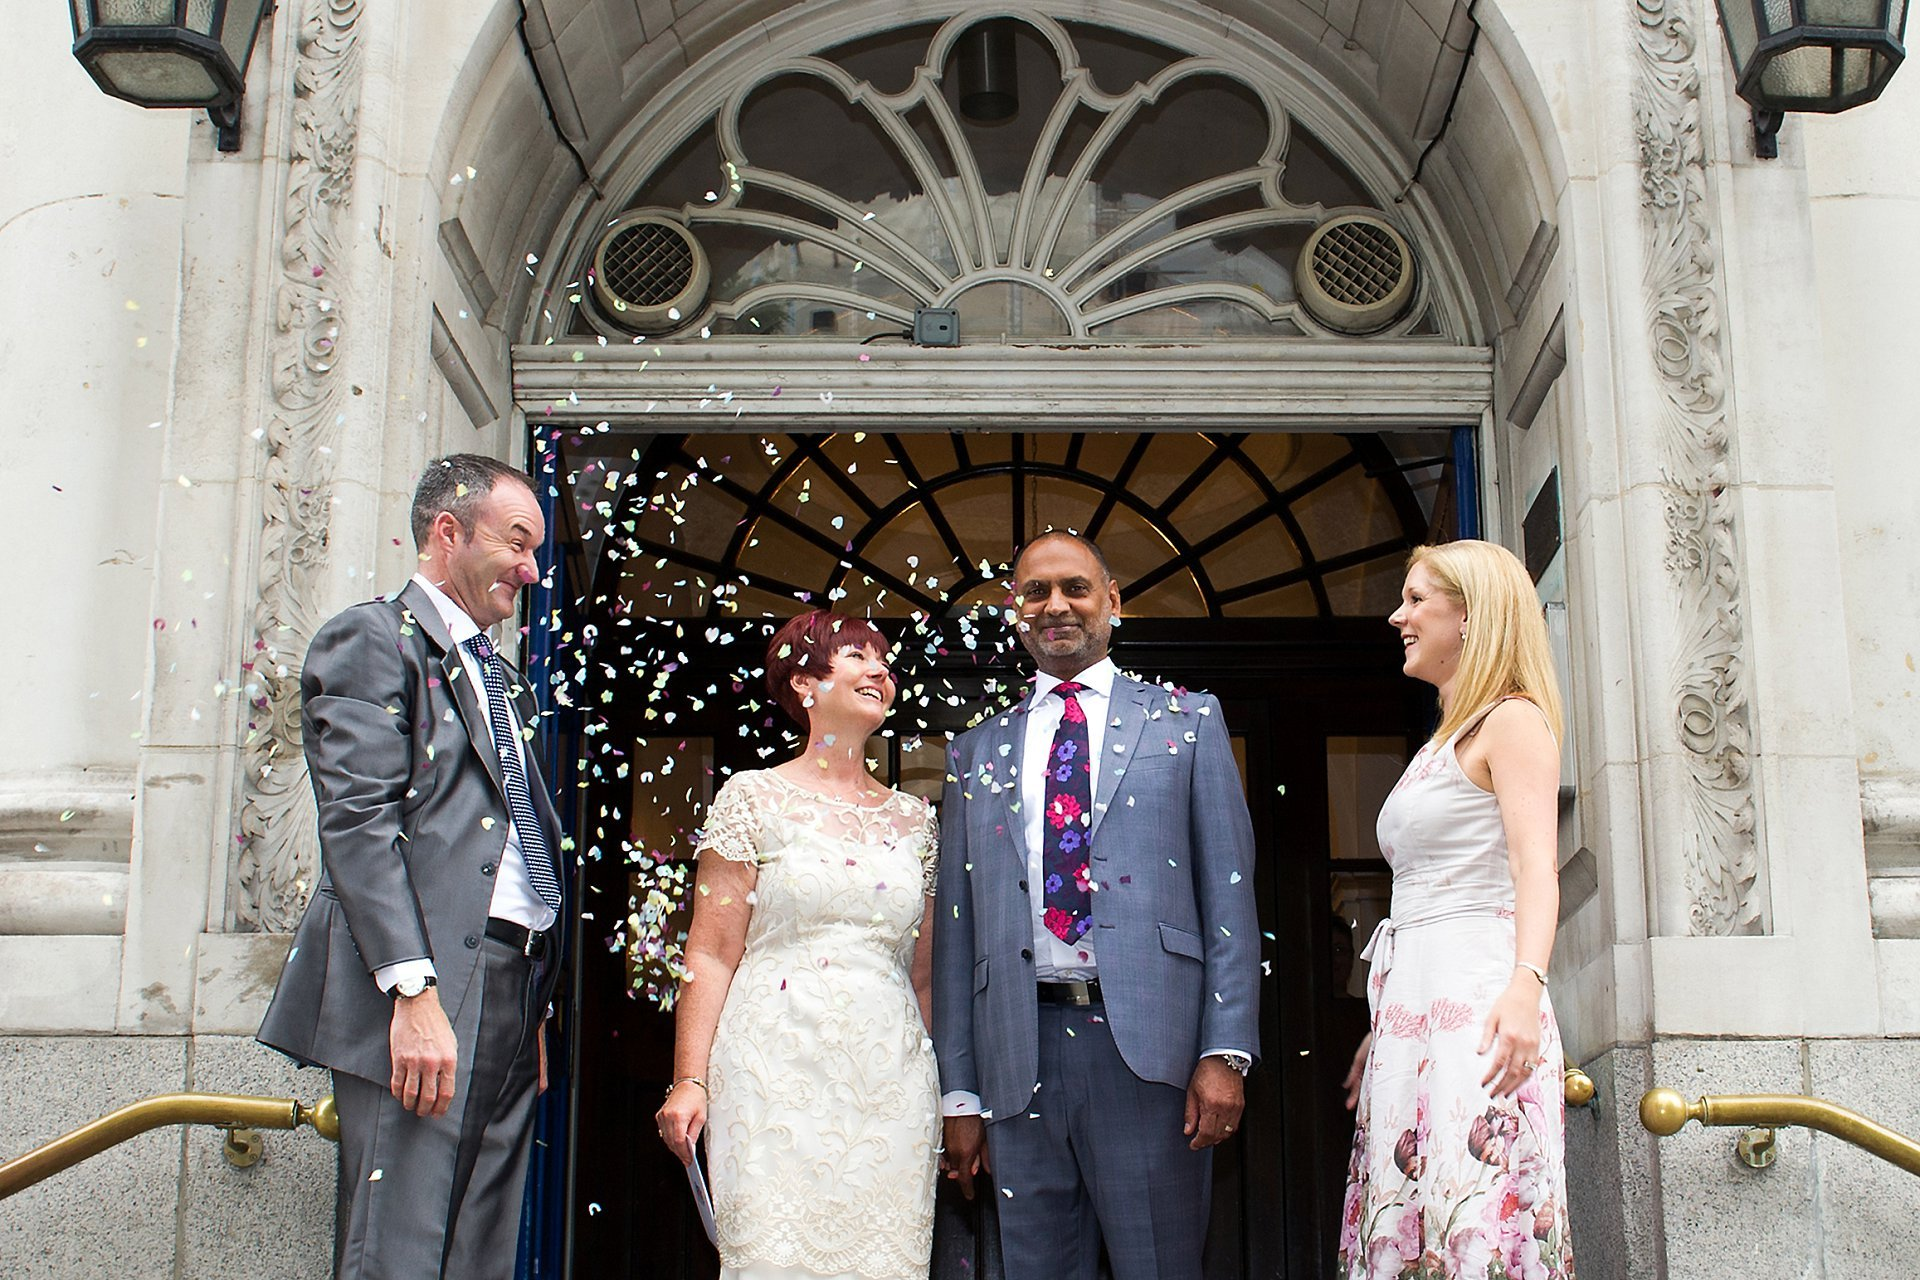 Register office wedding photography on the famous King's Road steps of the Kensington & Chelsea Register Office (Chelsea Old Town Hall) with the couple and their two guests and confetti